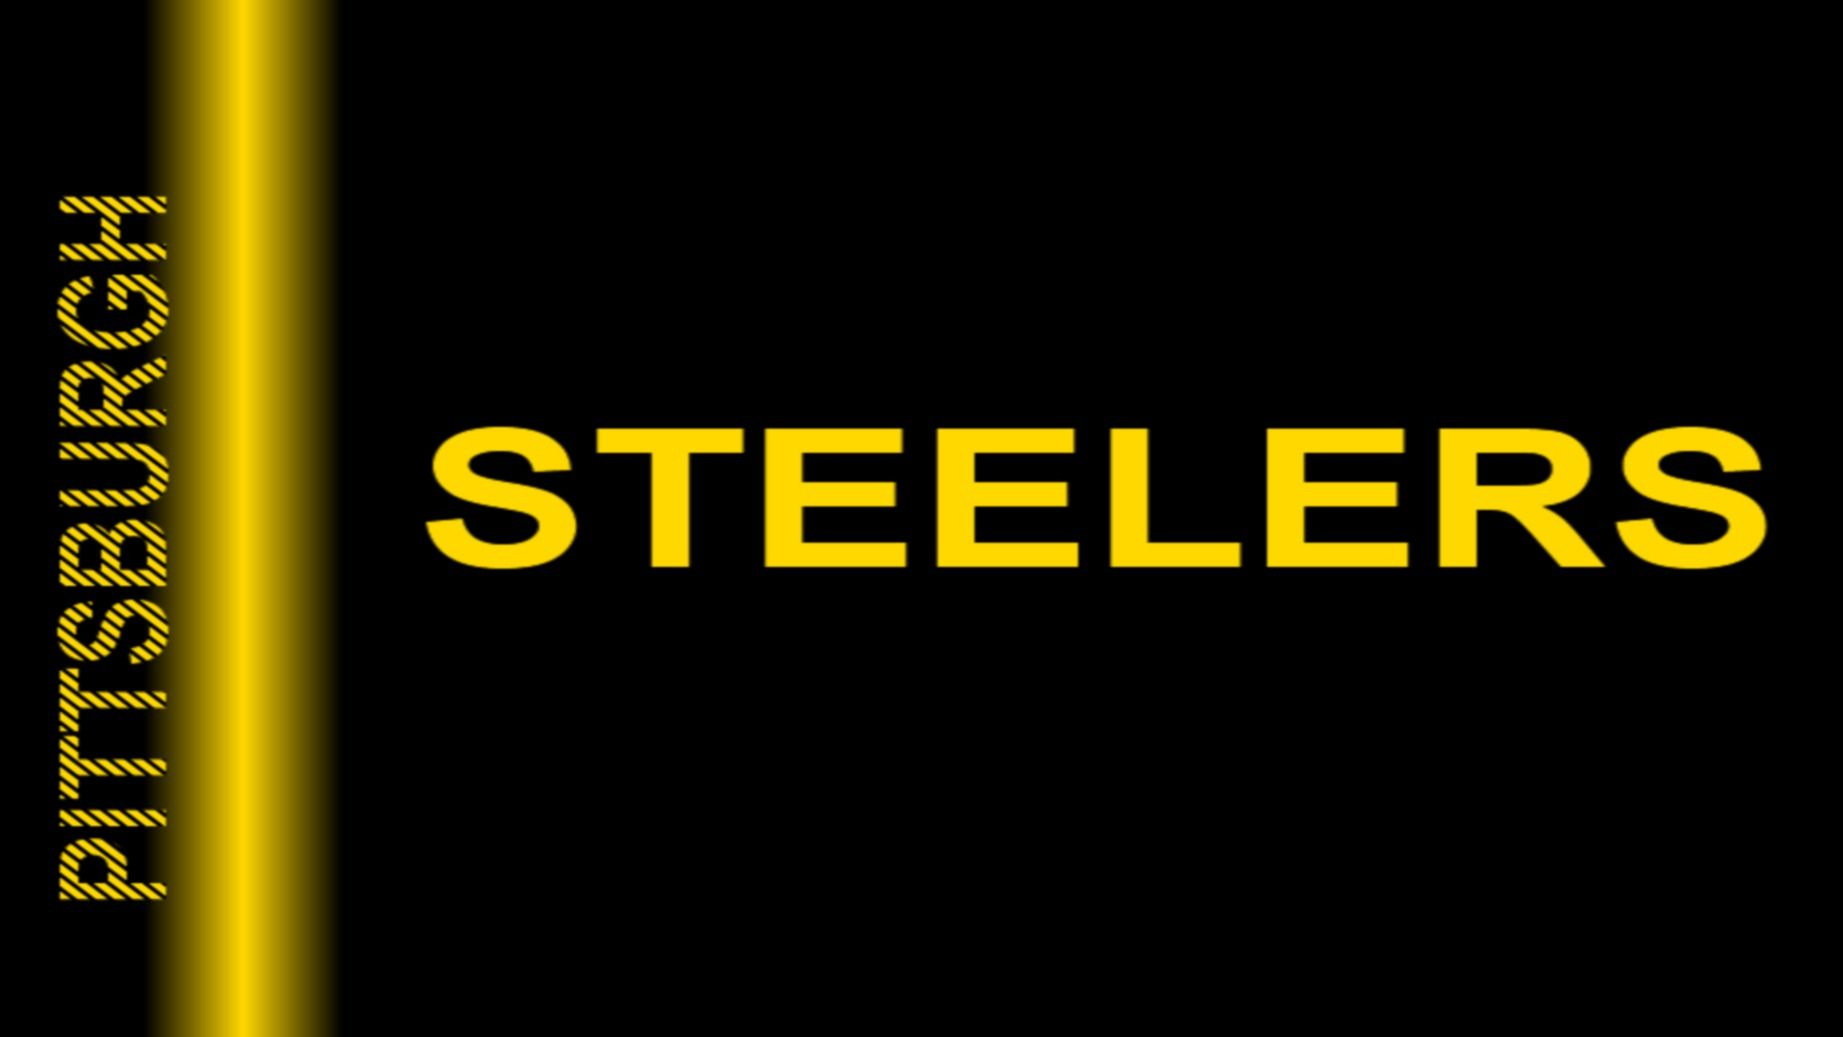 1843x1037 - Steelers Desktop 47